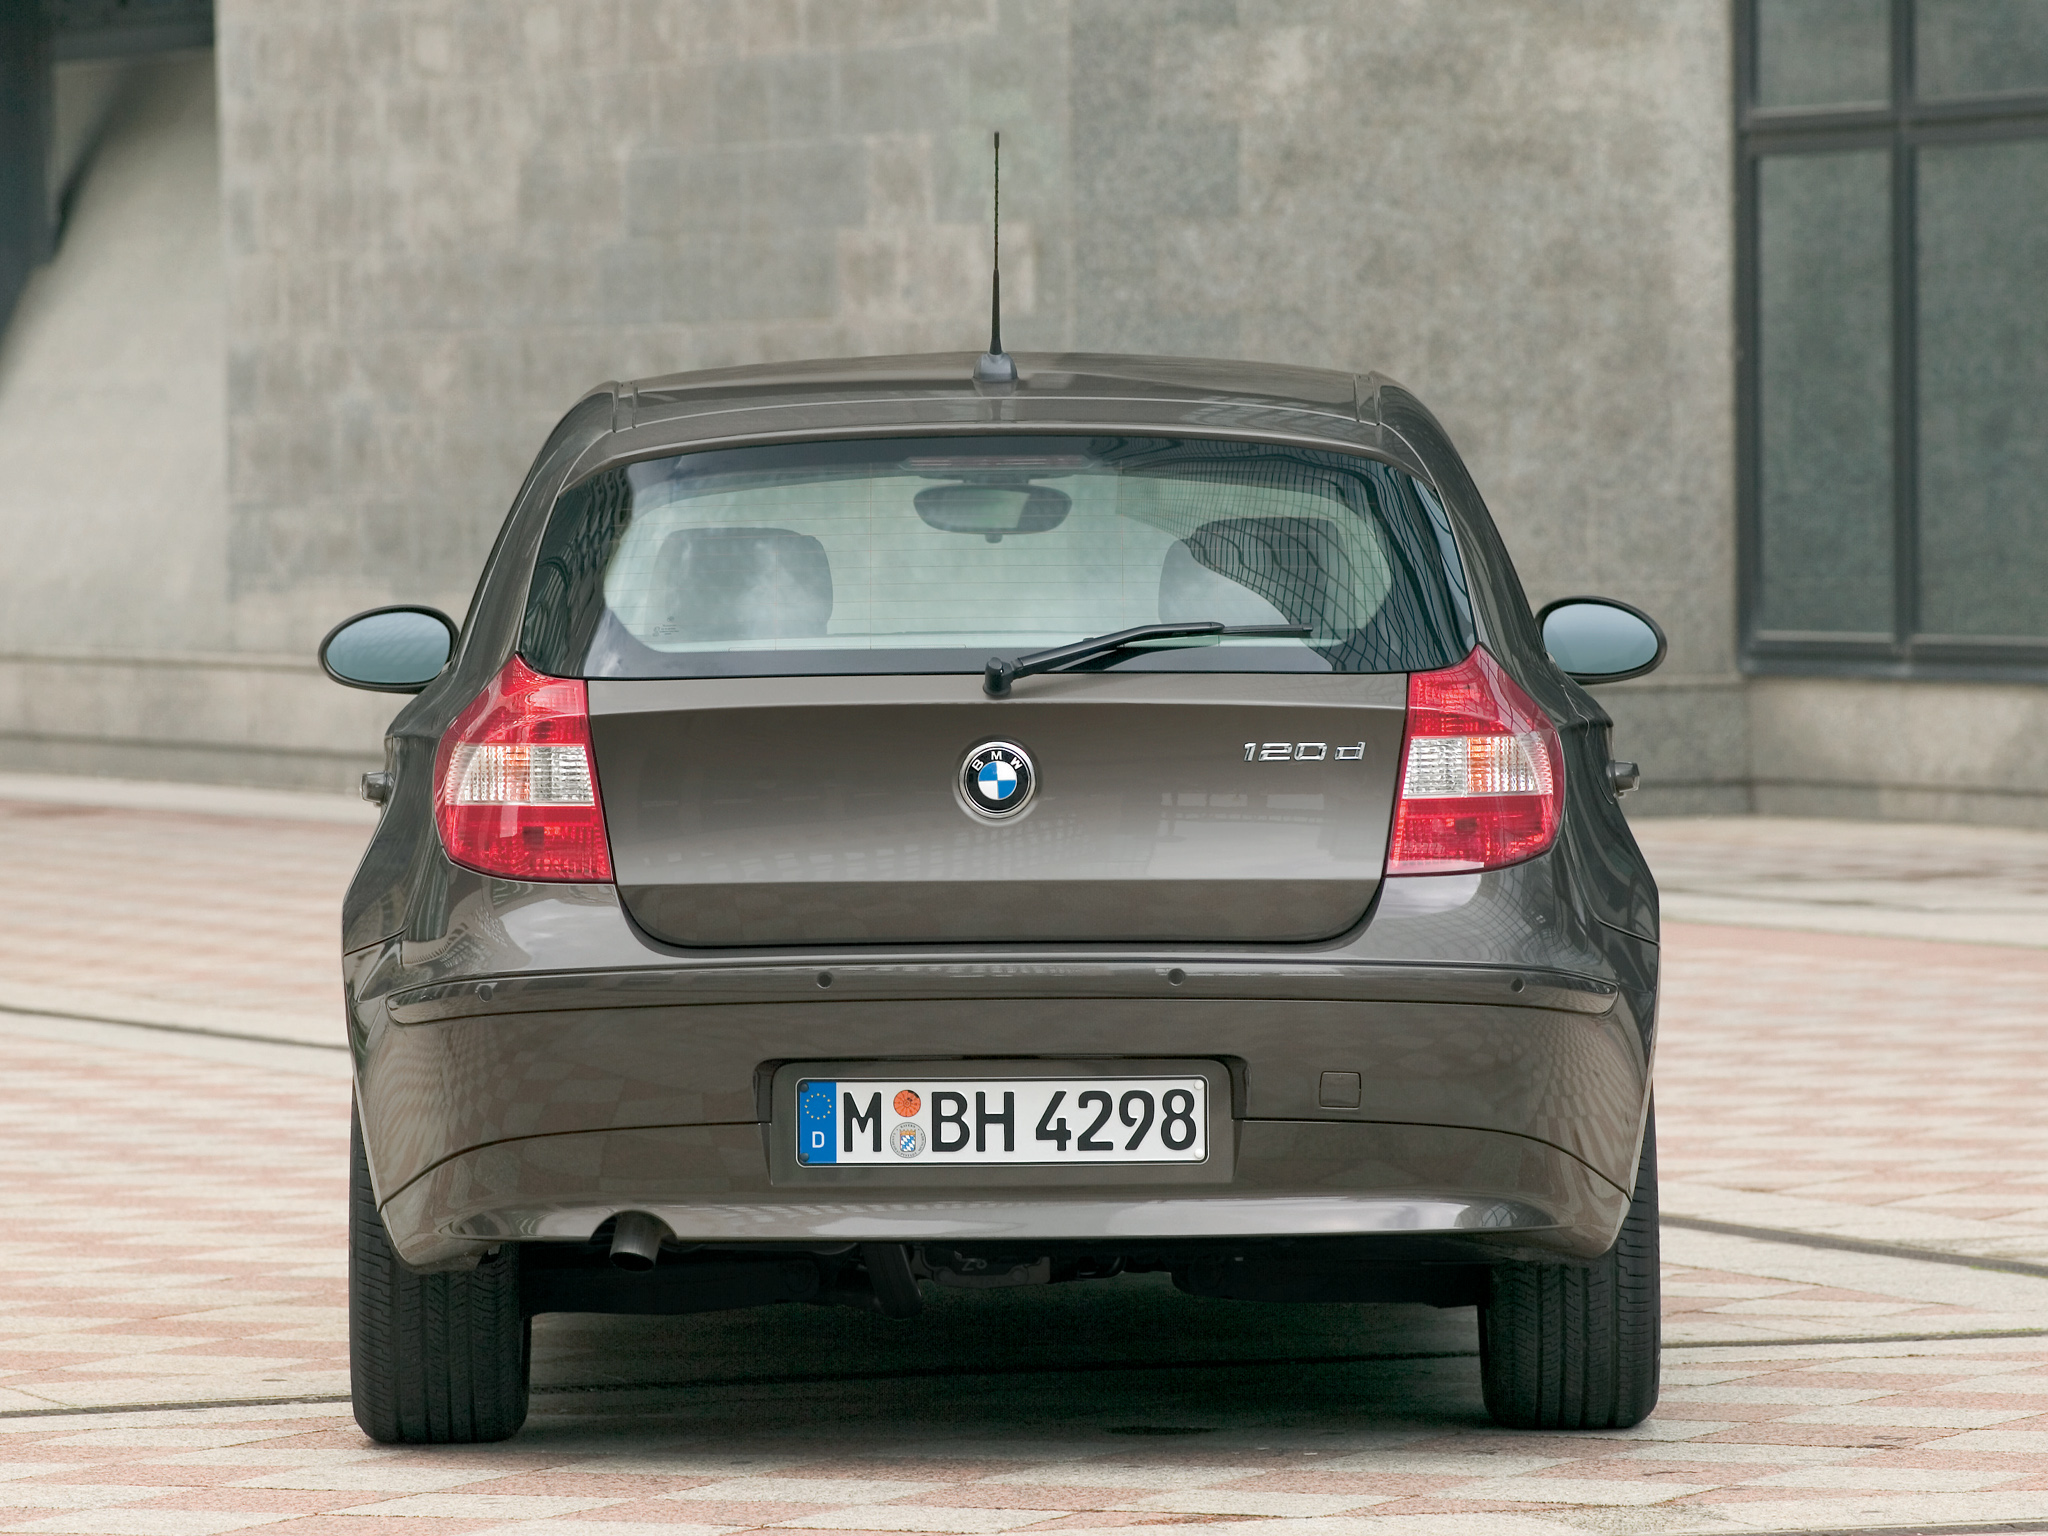 BMW 1 series 120d 2004 photo - 4